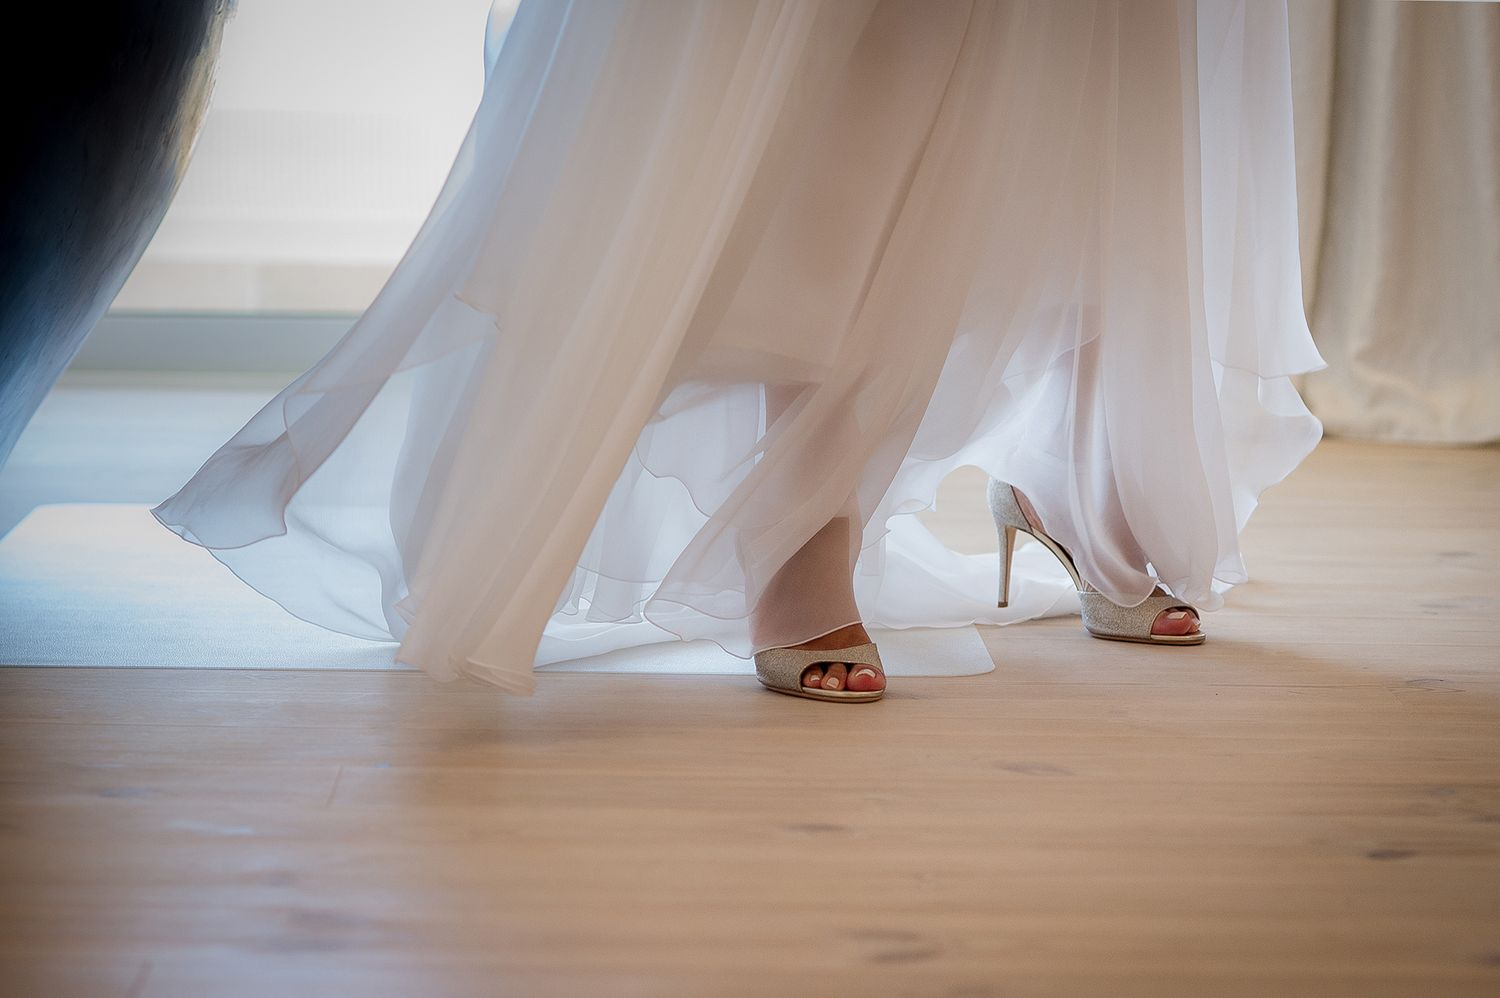 bride's feet wearing jimmy choo wedding heels